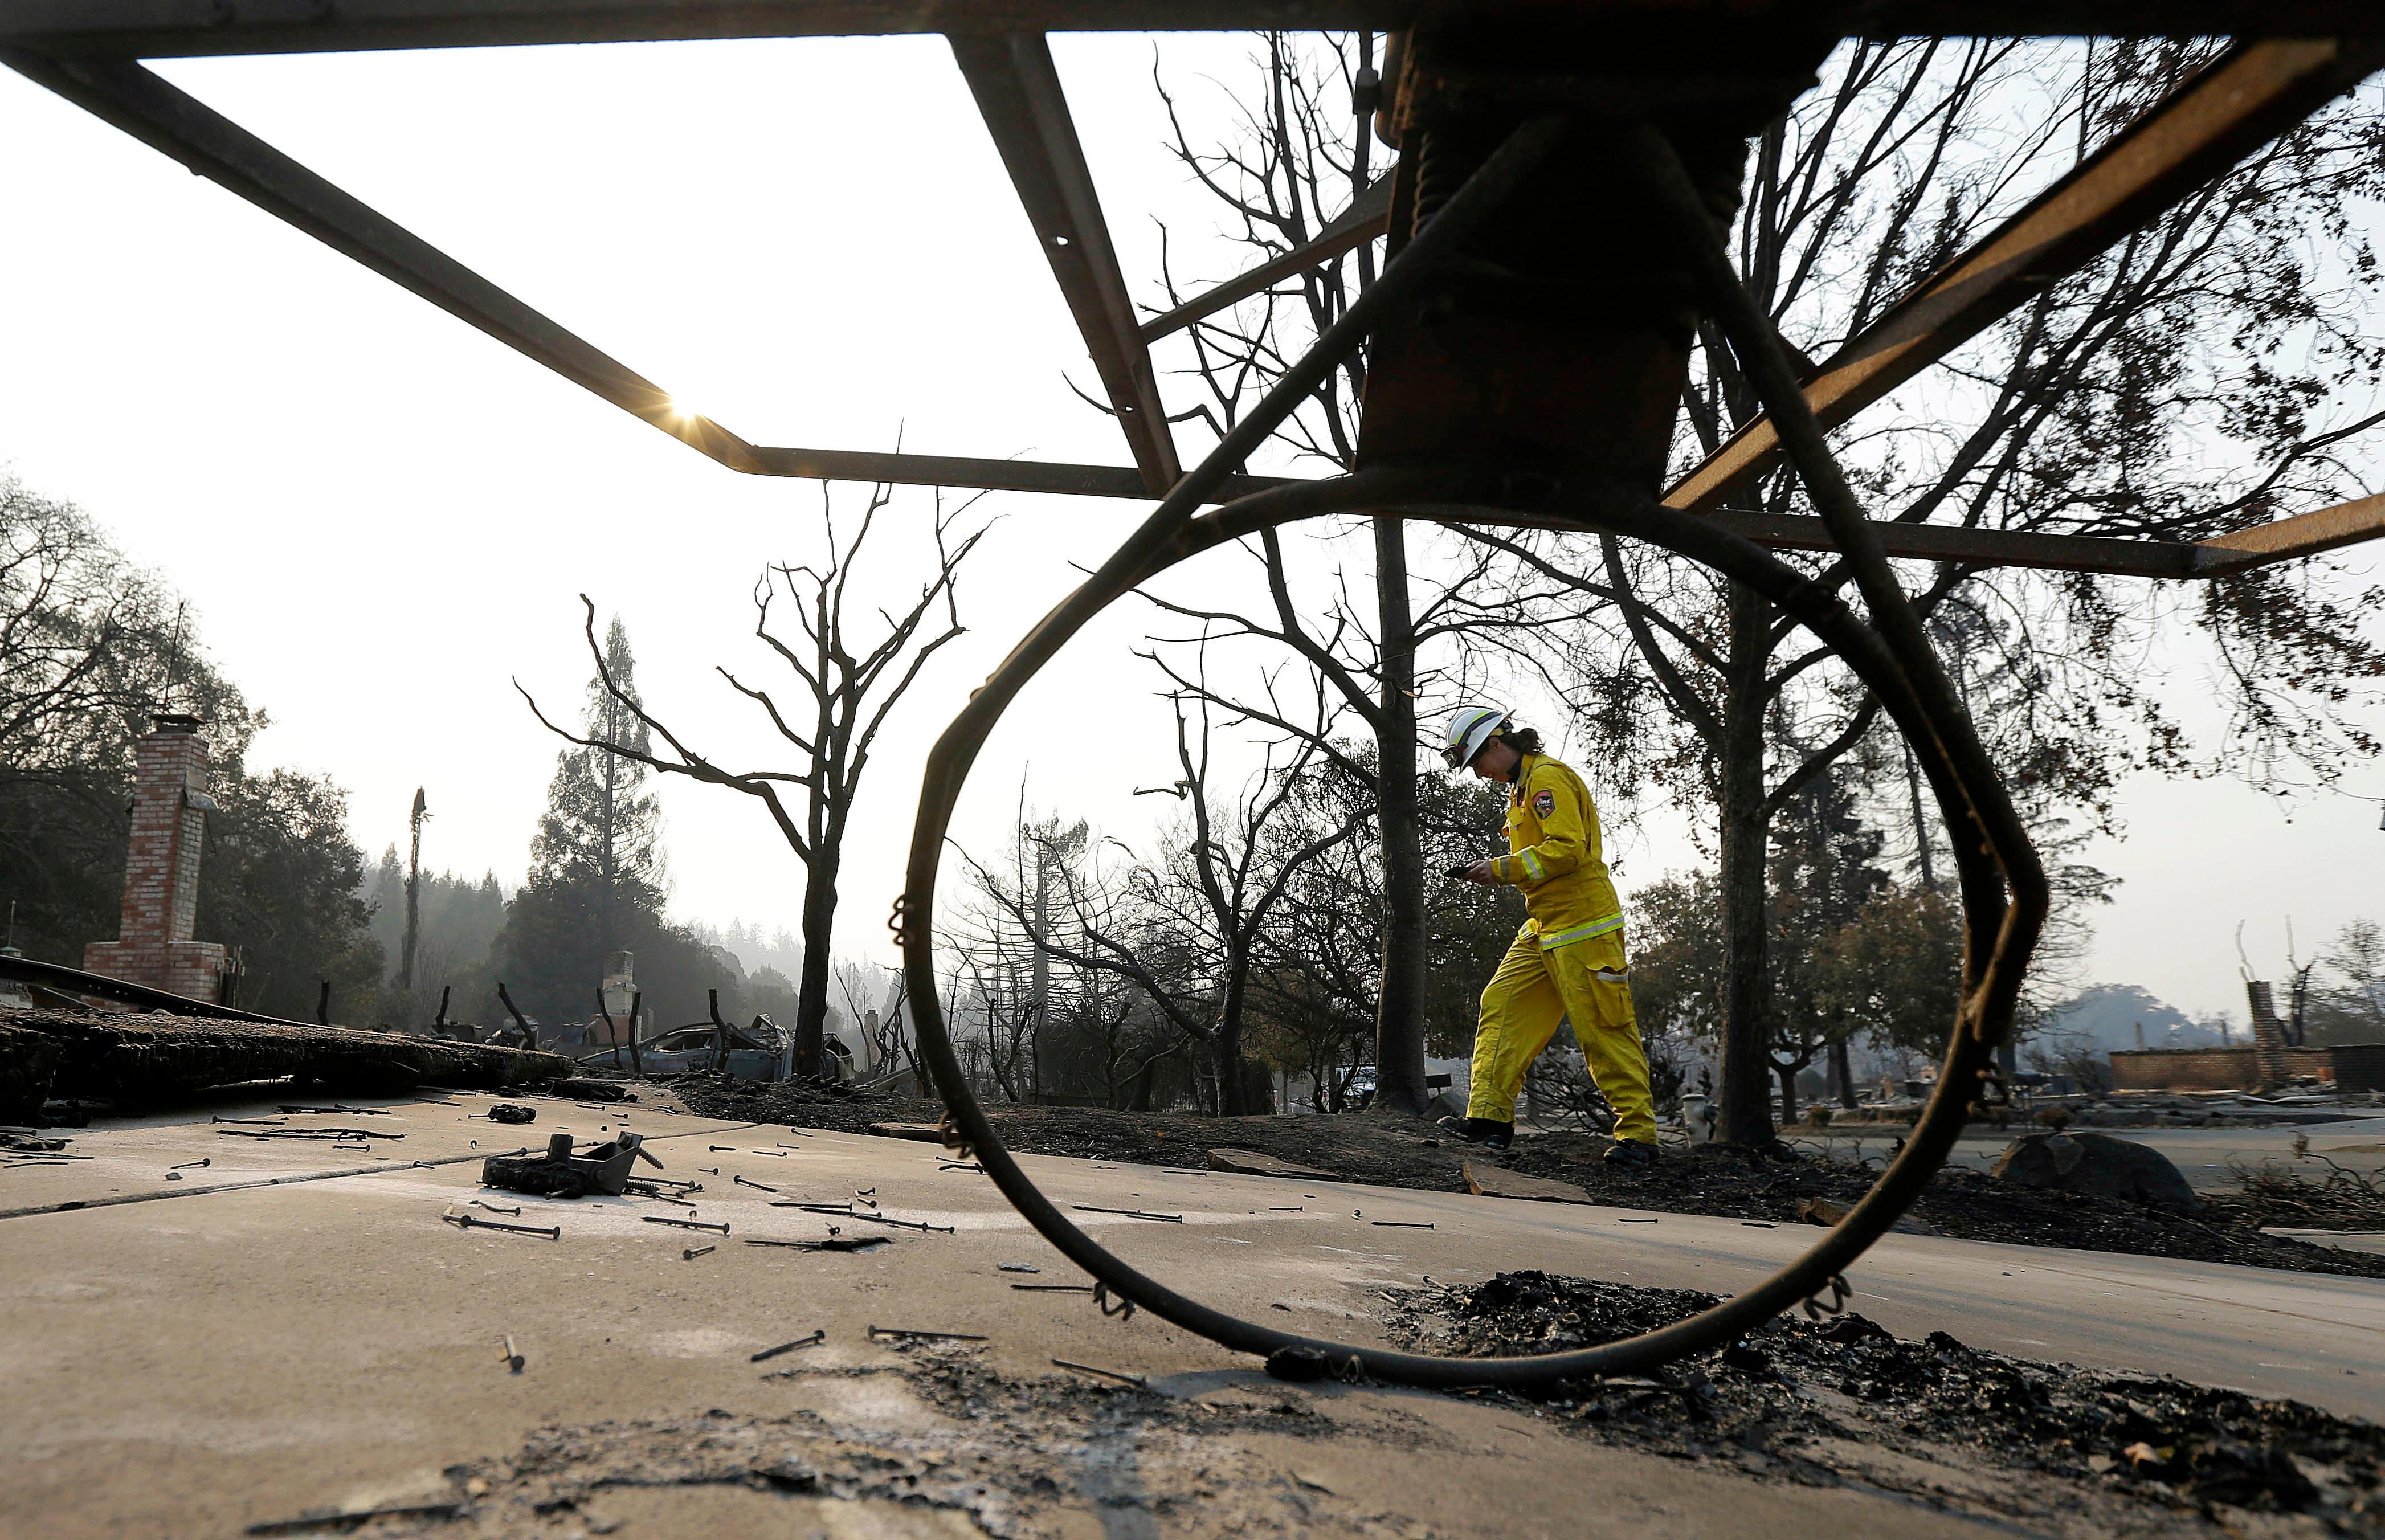 Cal Fire forester Kim Sone is framed by a fallen basketball hoop as she inspects damage at homes destroyed by wildfires in Santa Rosa, Calif., Thursday, Oct. 12, 2017. Gusting winds and dry air forecast for Thursday could drive the next wave of devastating wildfires that are already well on their way to becoming the deadliest and most destructive in California history. (AP Photo/Jeff Chiu)